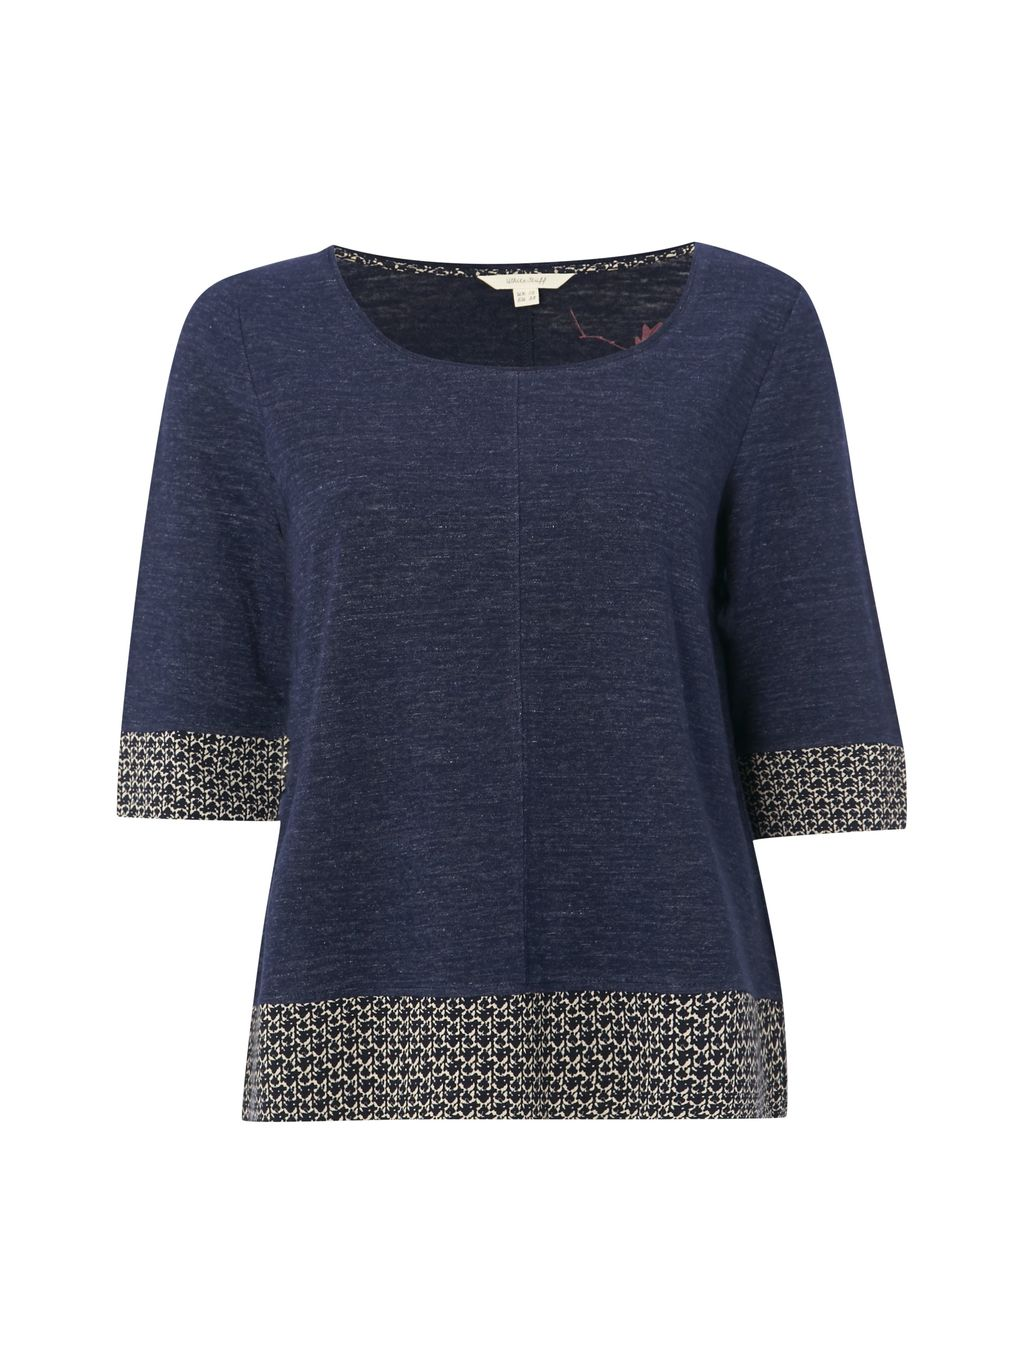 Suzi Jersey Tee, Blue - neckline: round neck; style: t-shirt; predominant colour: navy; secondary colour: stone; occasions: casual; length: standard; fibres: cotton - stretch; fit: loose; sleeve length: 3/4 length; sleeve style: standard; pattern type: fabric; pattern size: light/subtle; pattern: patterned/print; texture group: jersey - stretchy/drapey; season: s/s 2016; wardrobe: highlight; embellishment: contrast fabric; embellishment location: hip